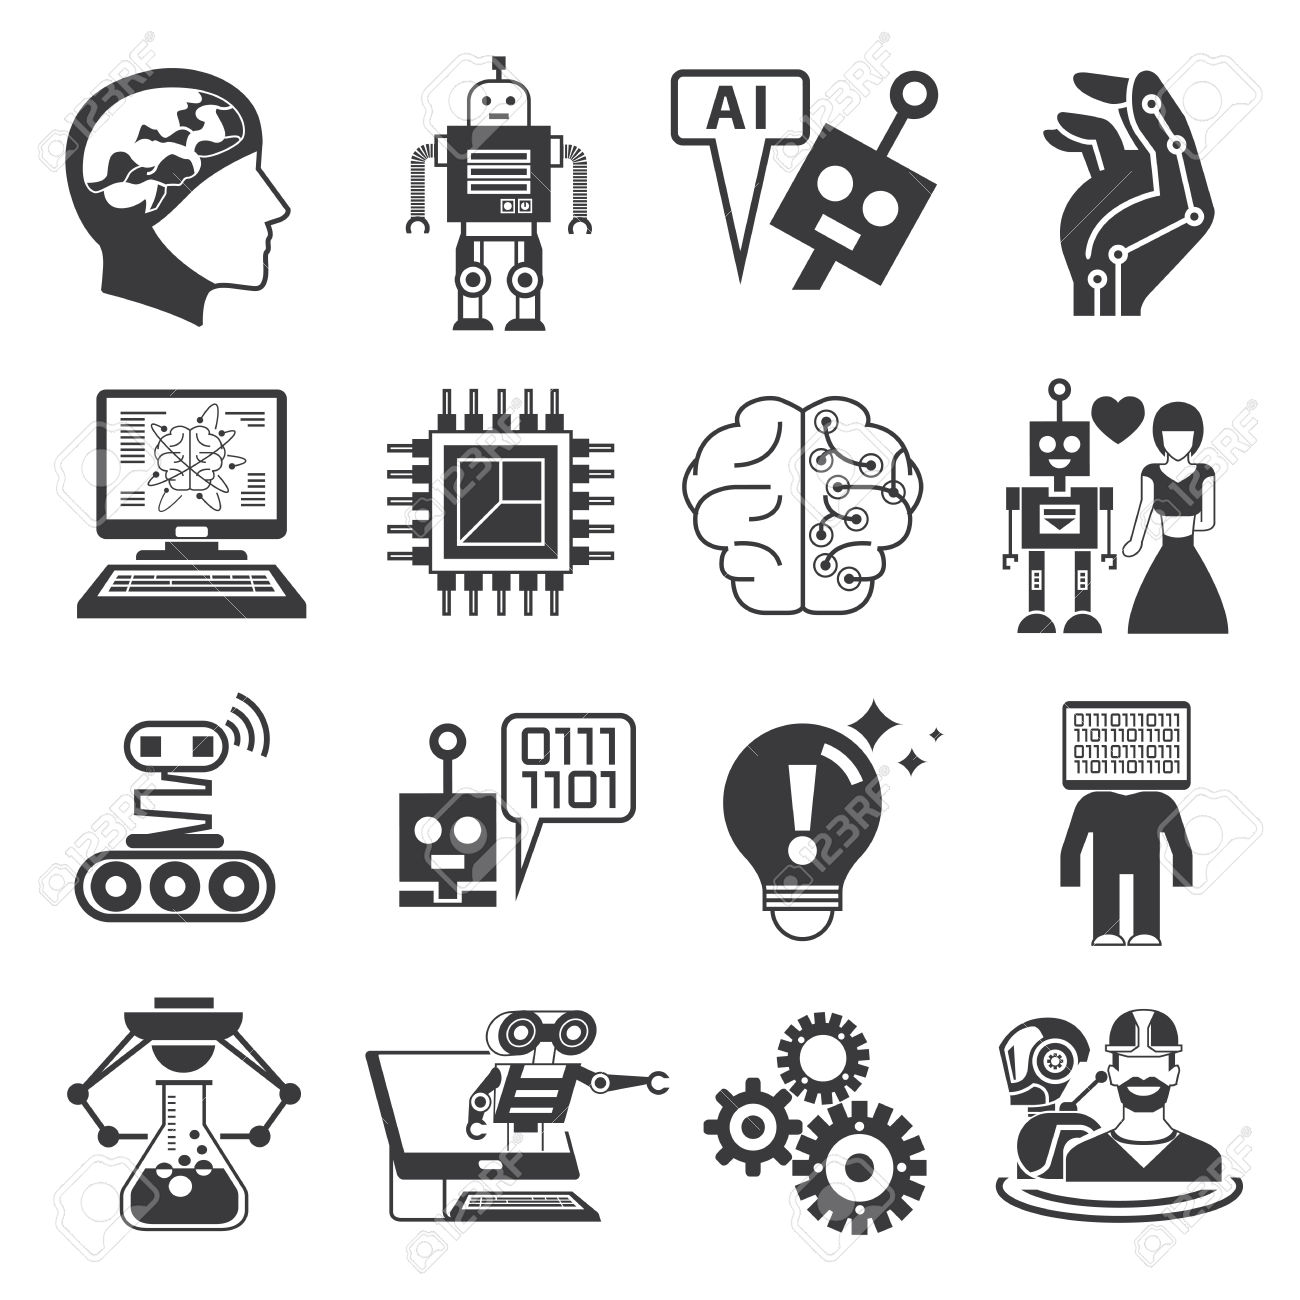 Robot Icons, Artificial Intelligence Icons Royalty Free Cliparts.